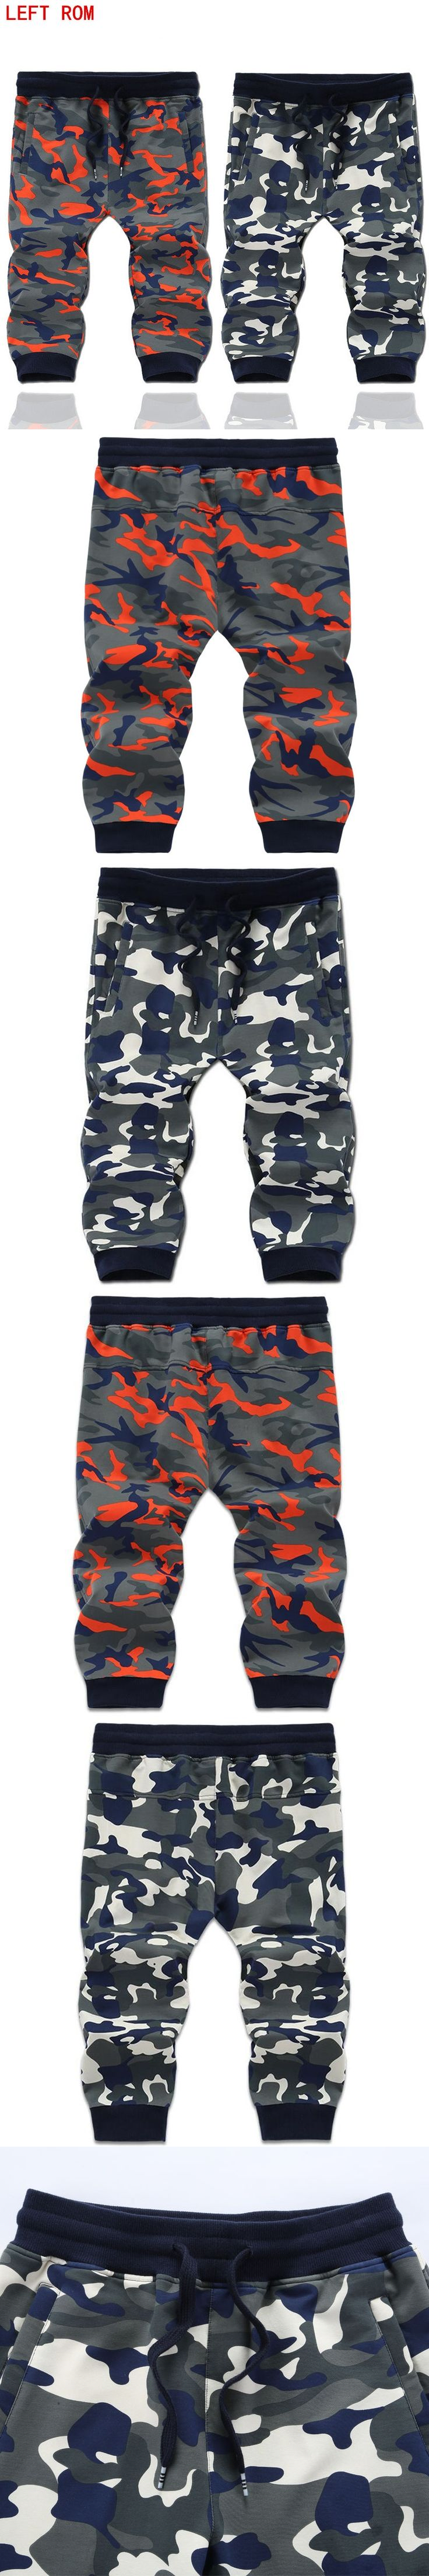 Men's New Camouflage Casual Shorts Fashion Beach shorts Army shorts Uniforms Large Size men's Leisure Rib so    L-8XL